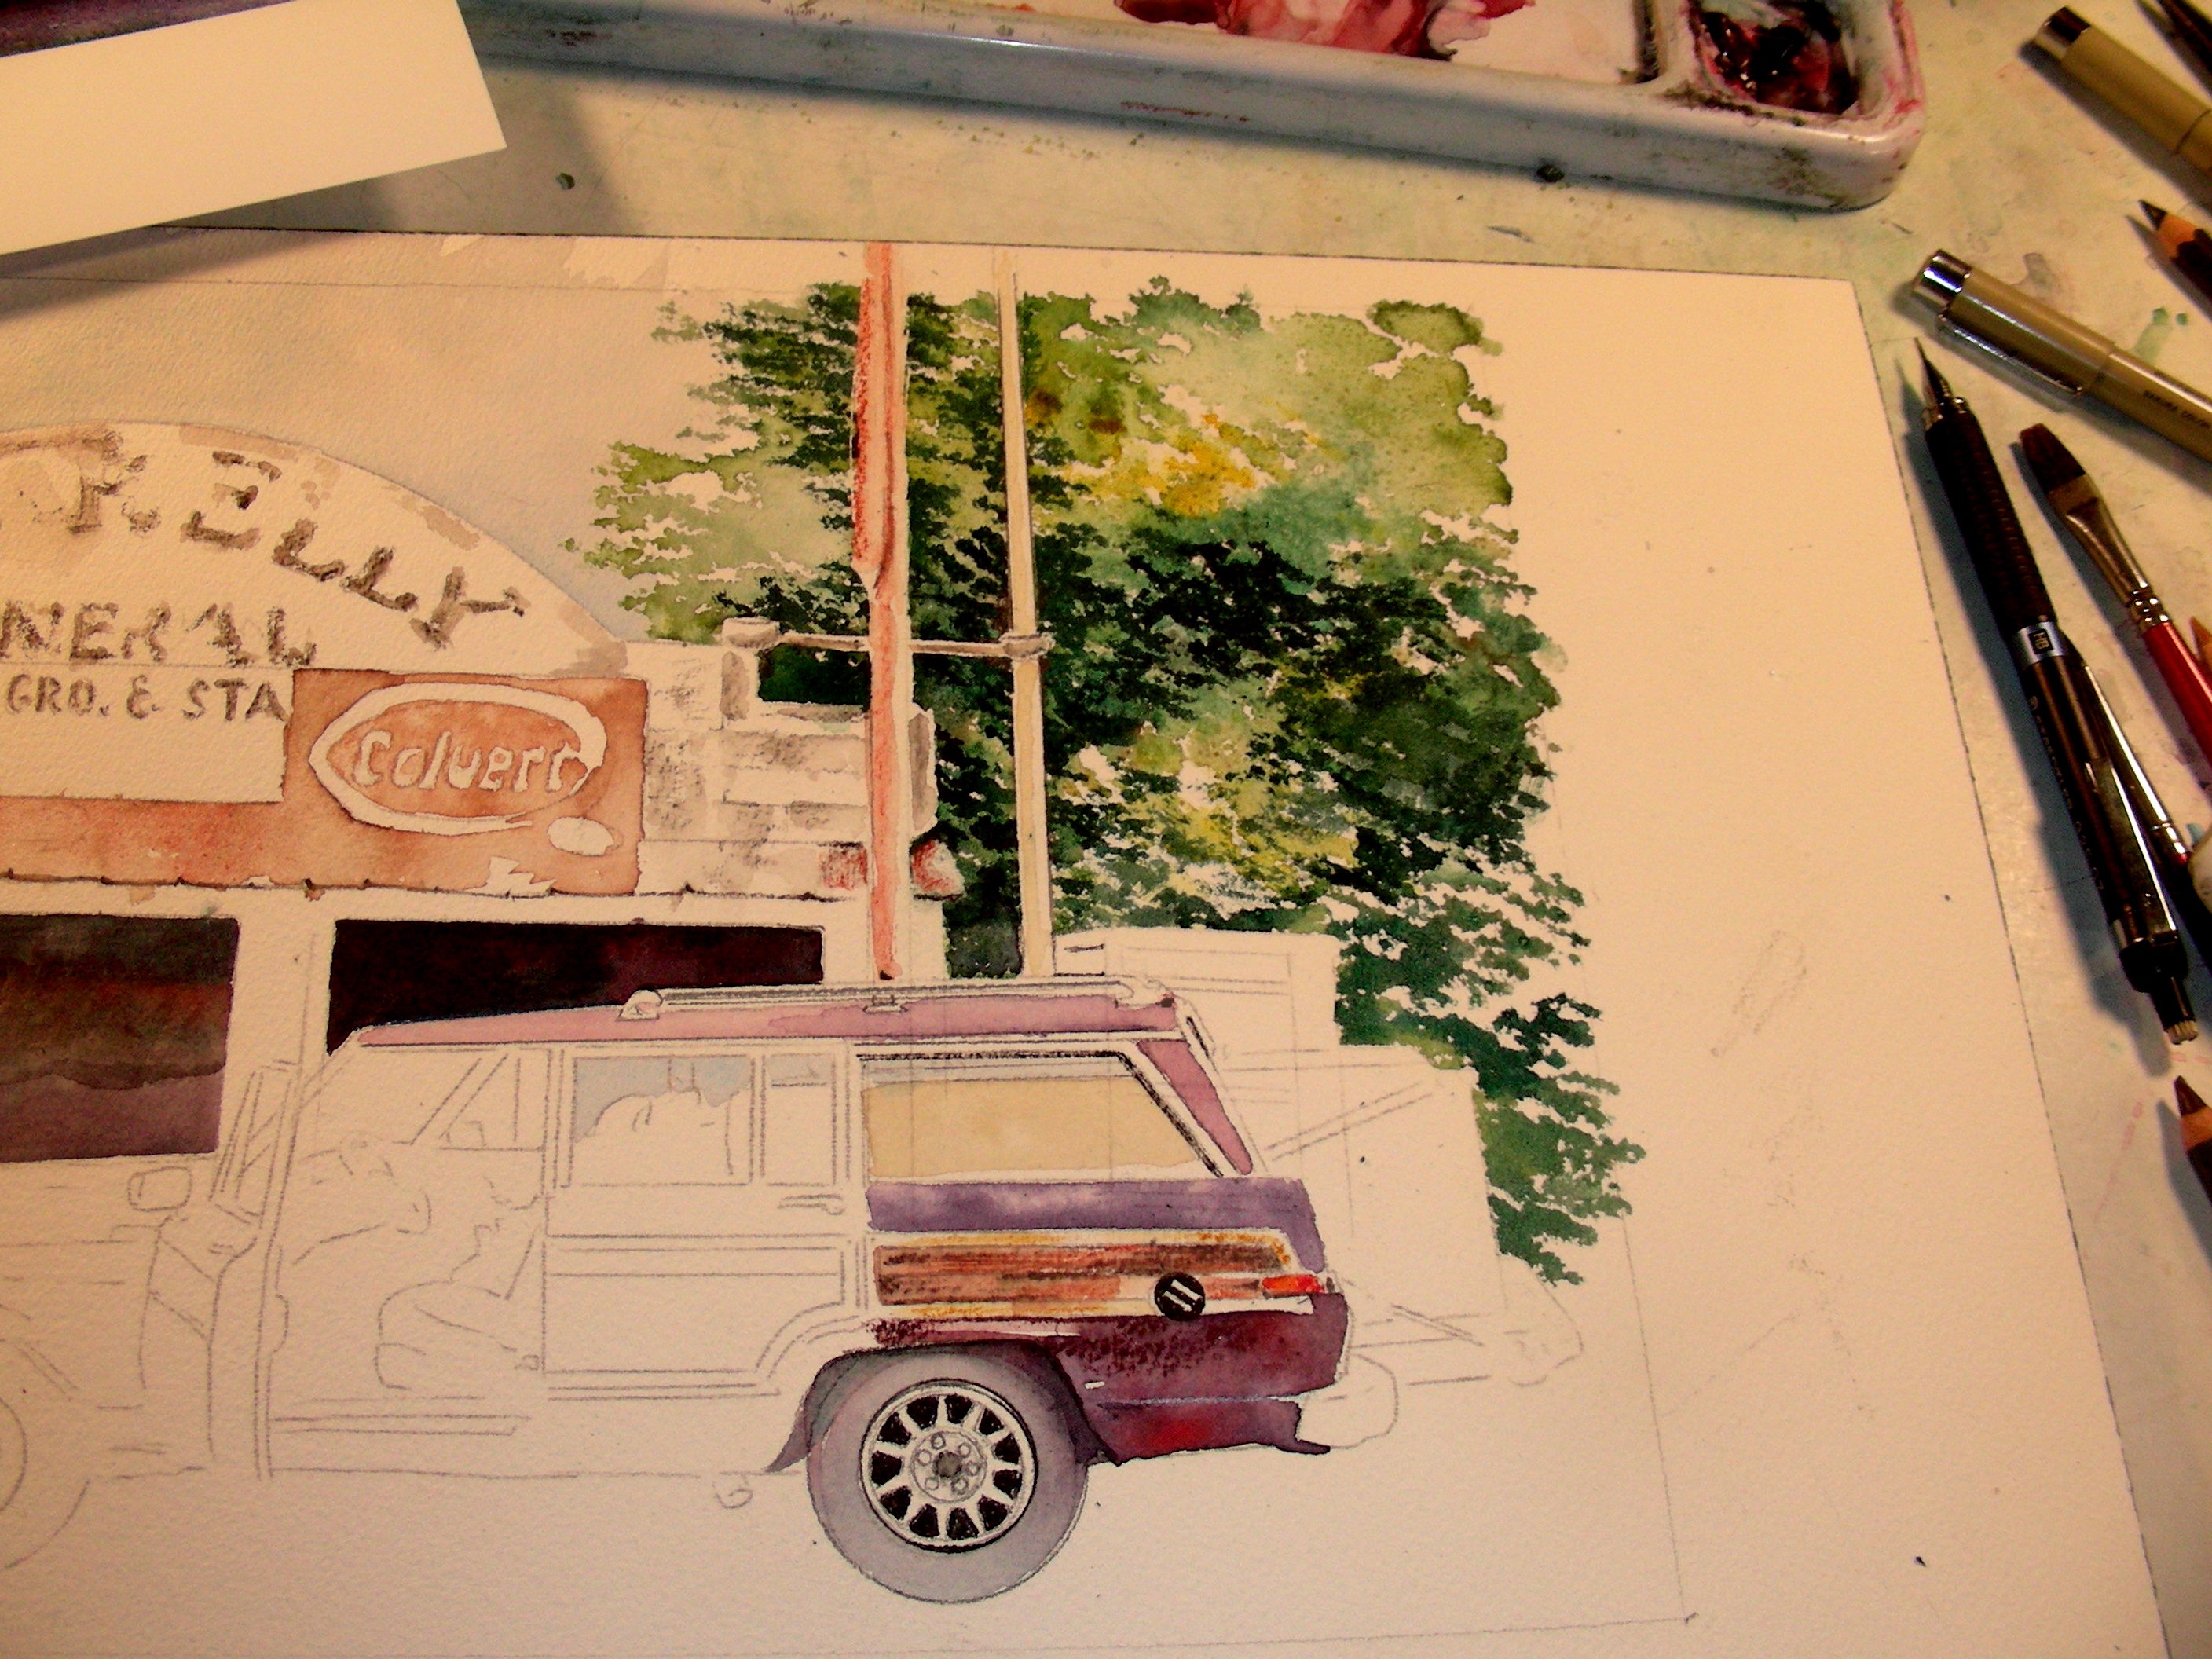 Beginning Work on a Second Commission